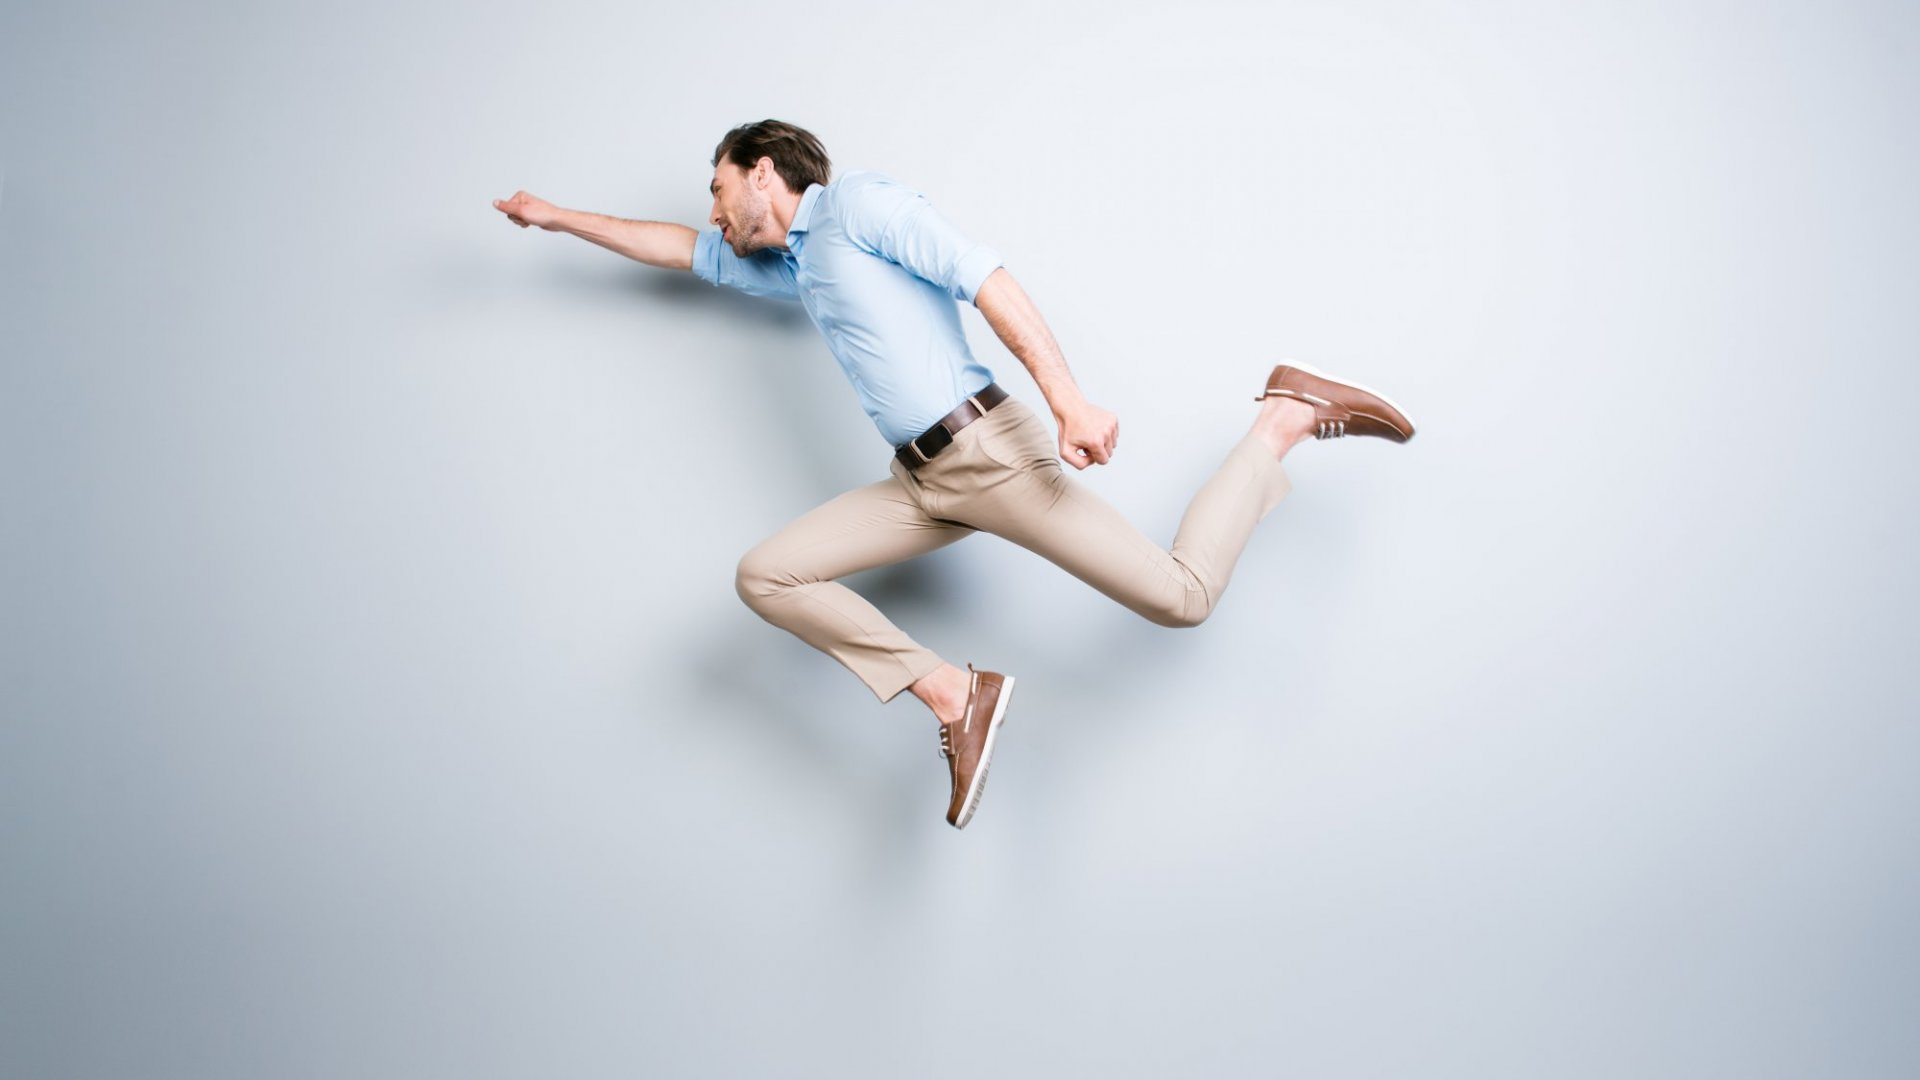 What This NYT Bestselling Author Has to Share with You About Getting Off Your #$% and Into Action